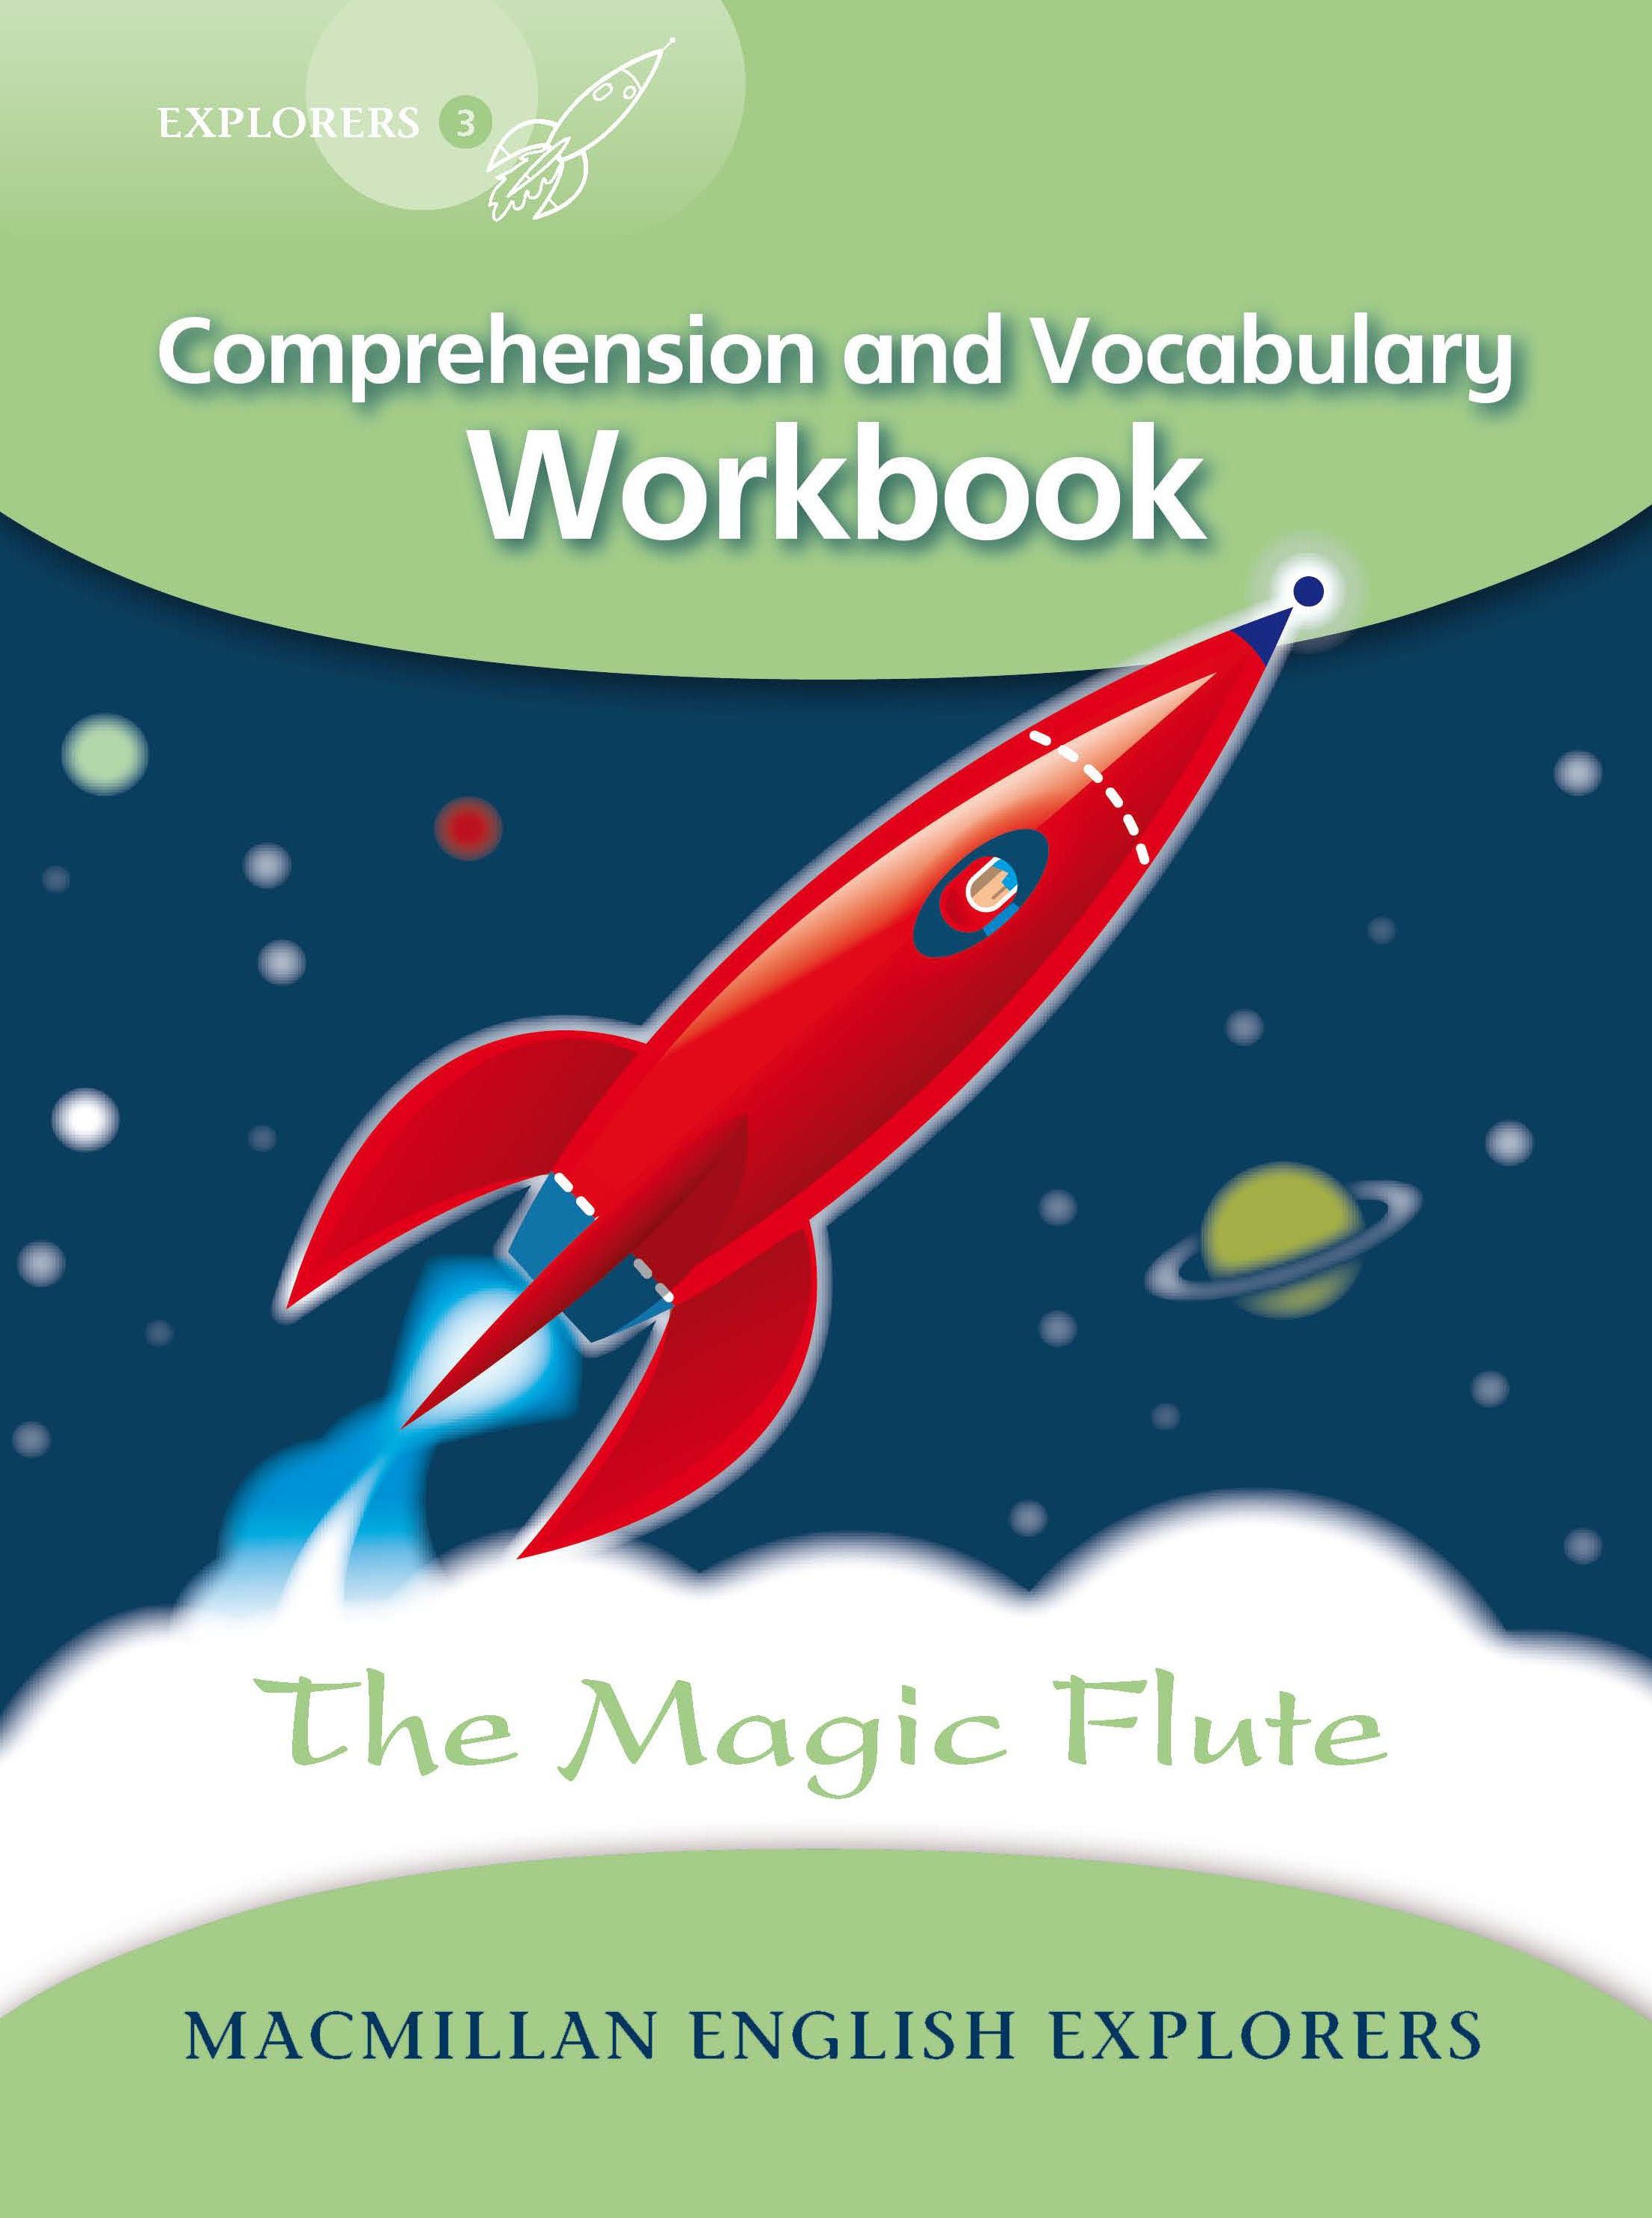 Explorers 3: The Magic Flute Workbook